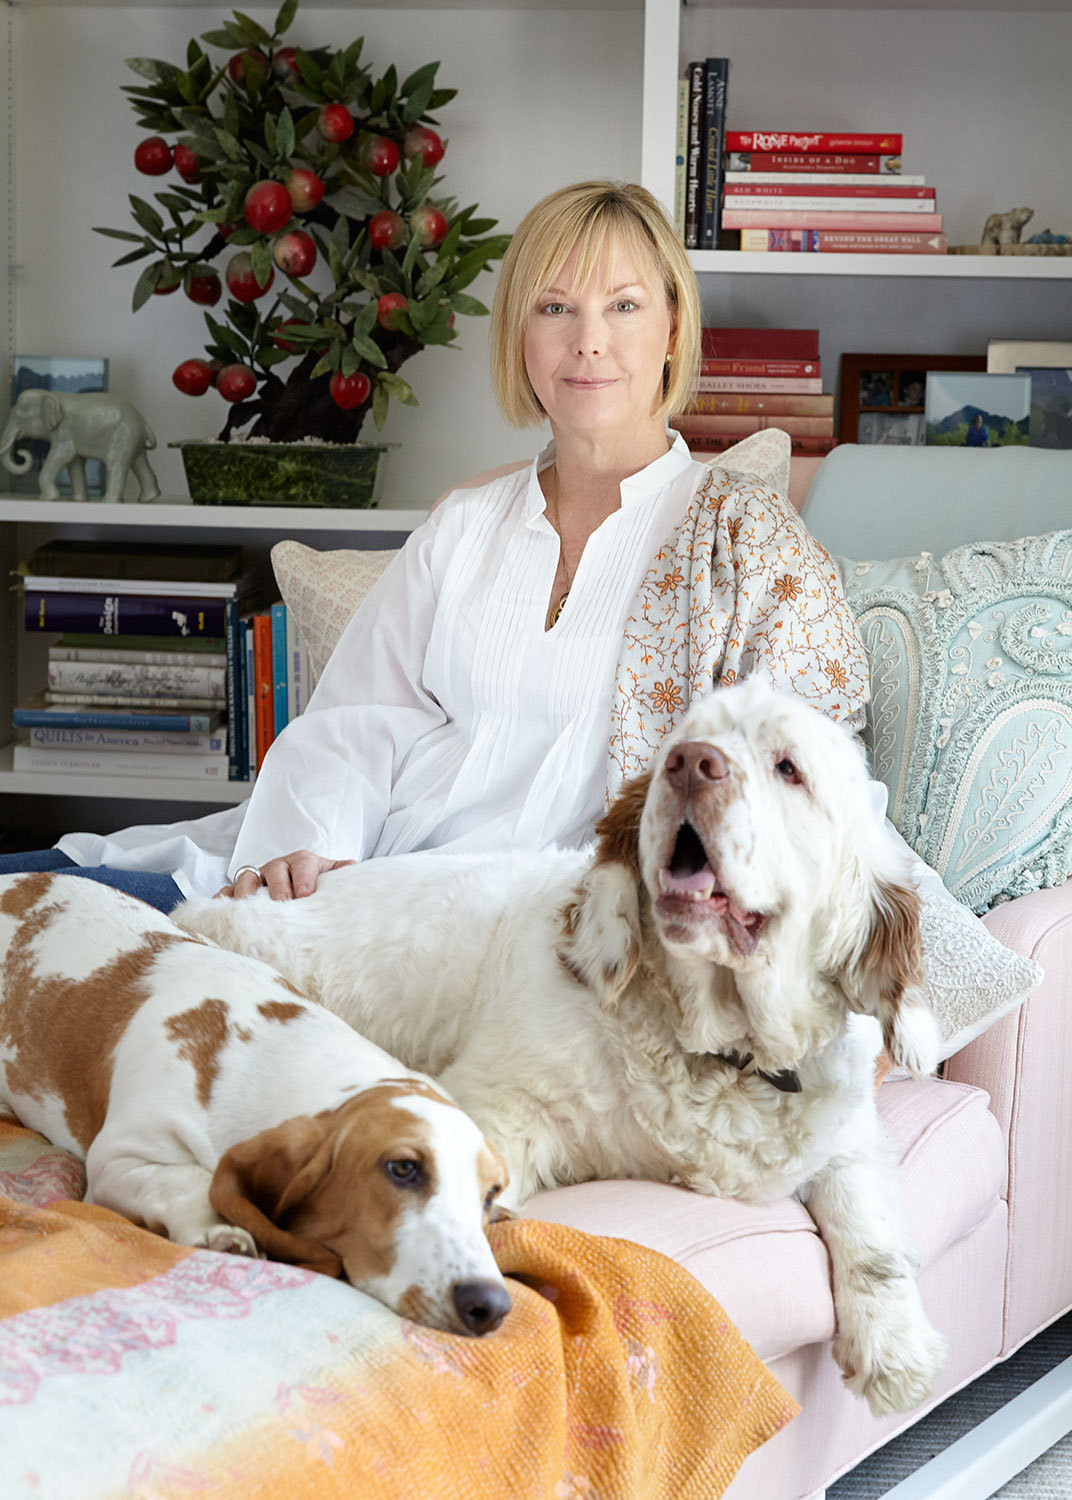 Designer Annie Selke with two of her dogs, a basset hound and a Clumber spaniel.